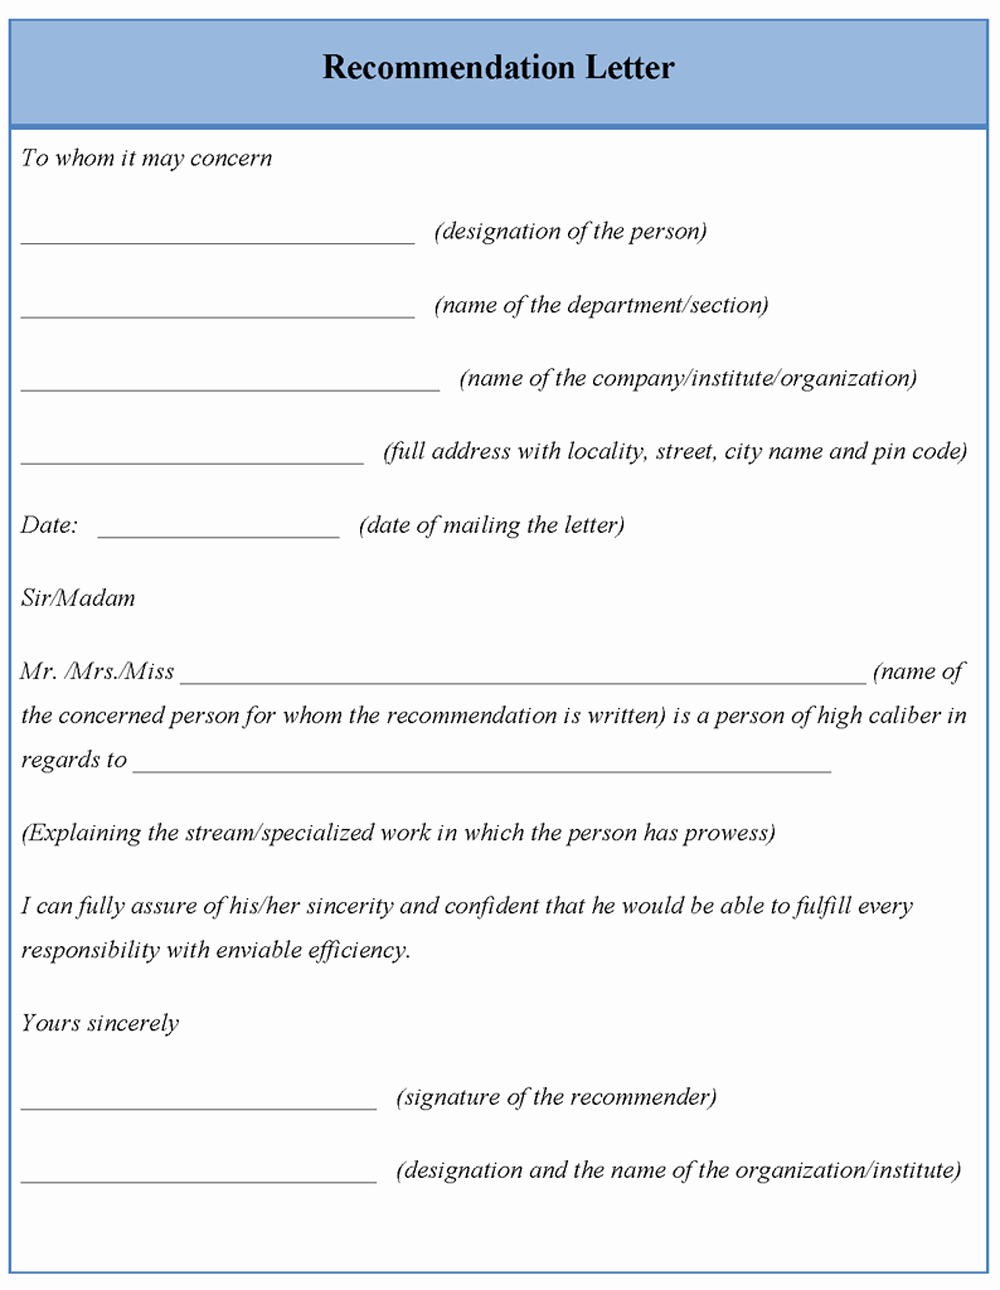 Template for Letter Re Mendation